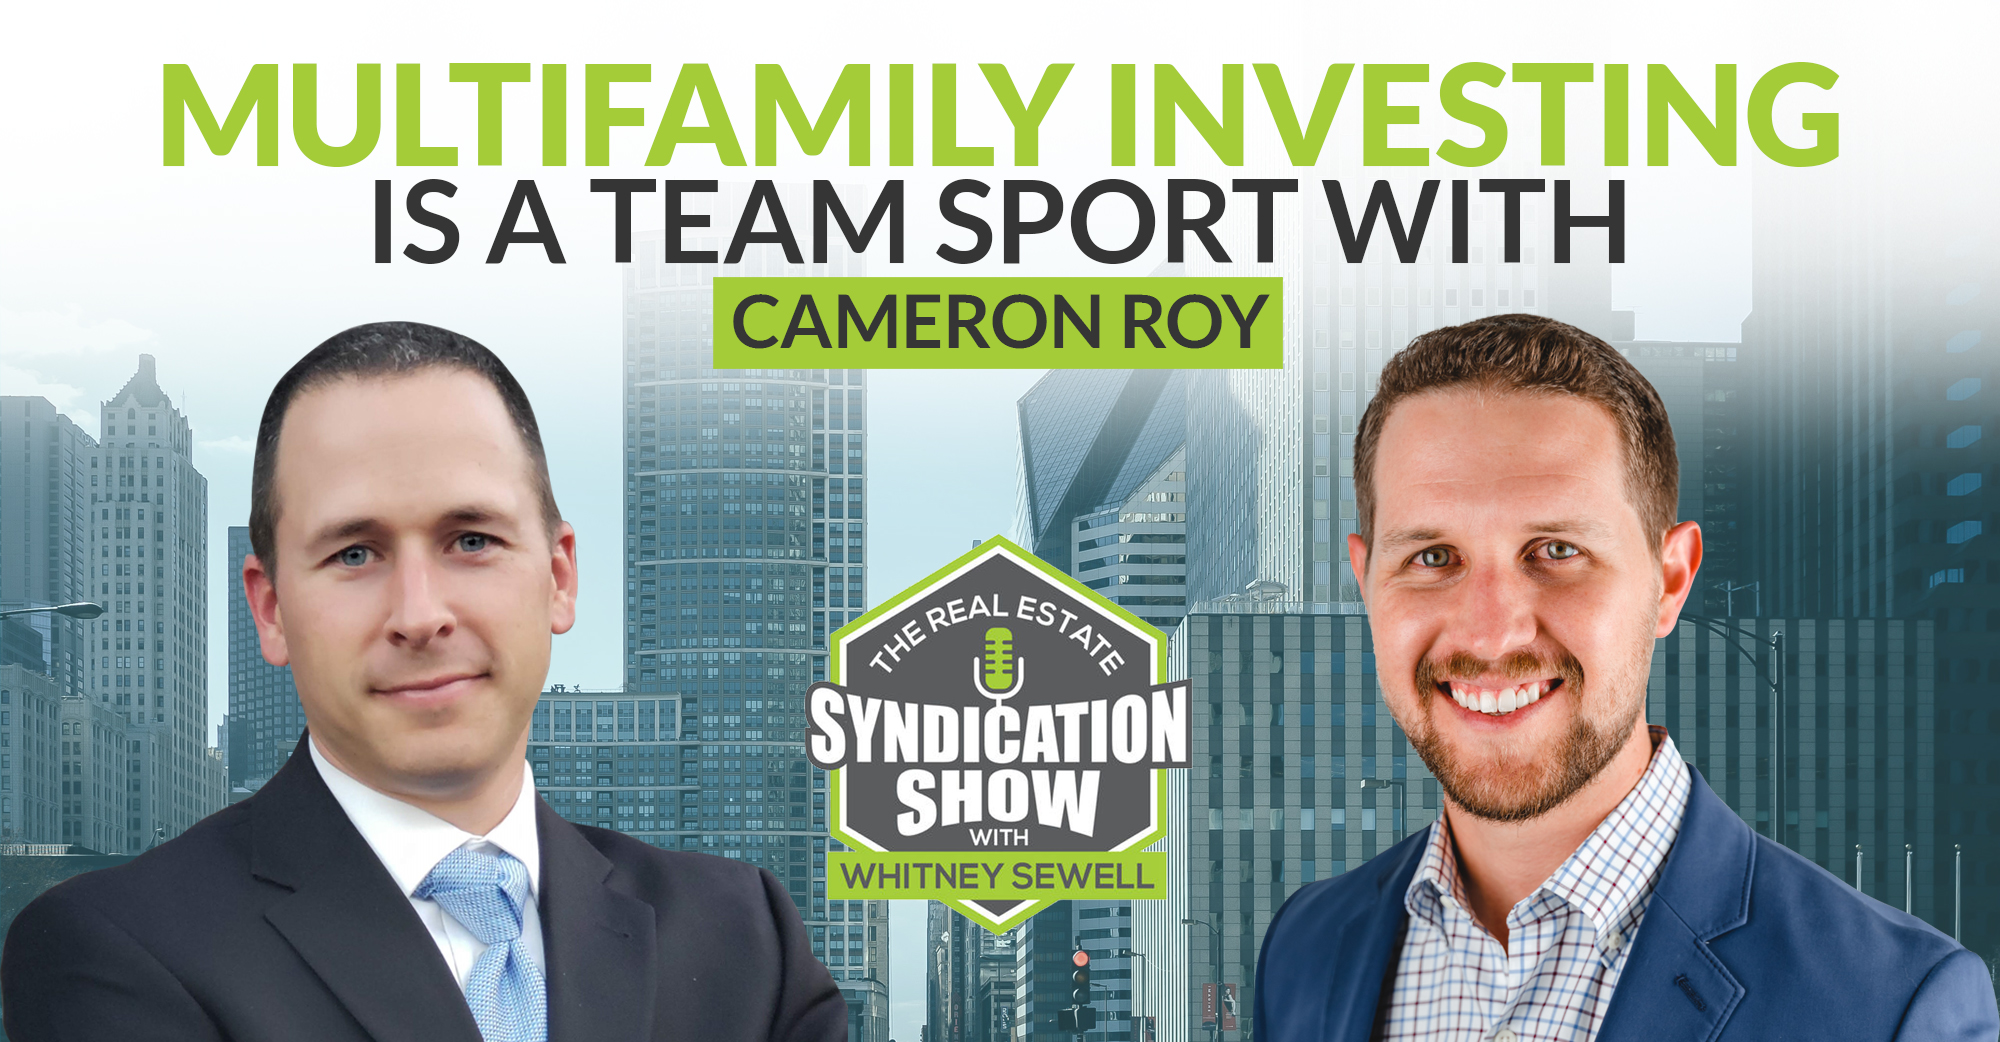 Multifamily Investing Is A Team Sport With Cameron Roy